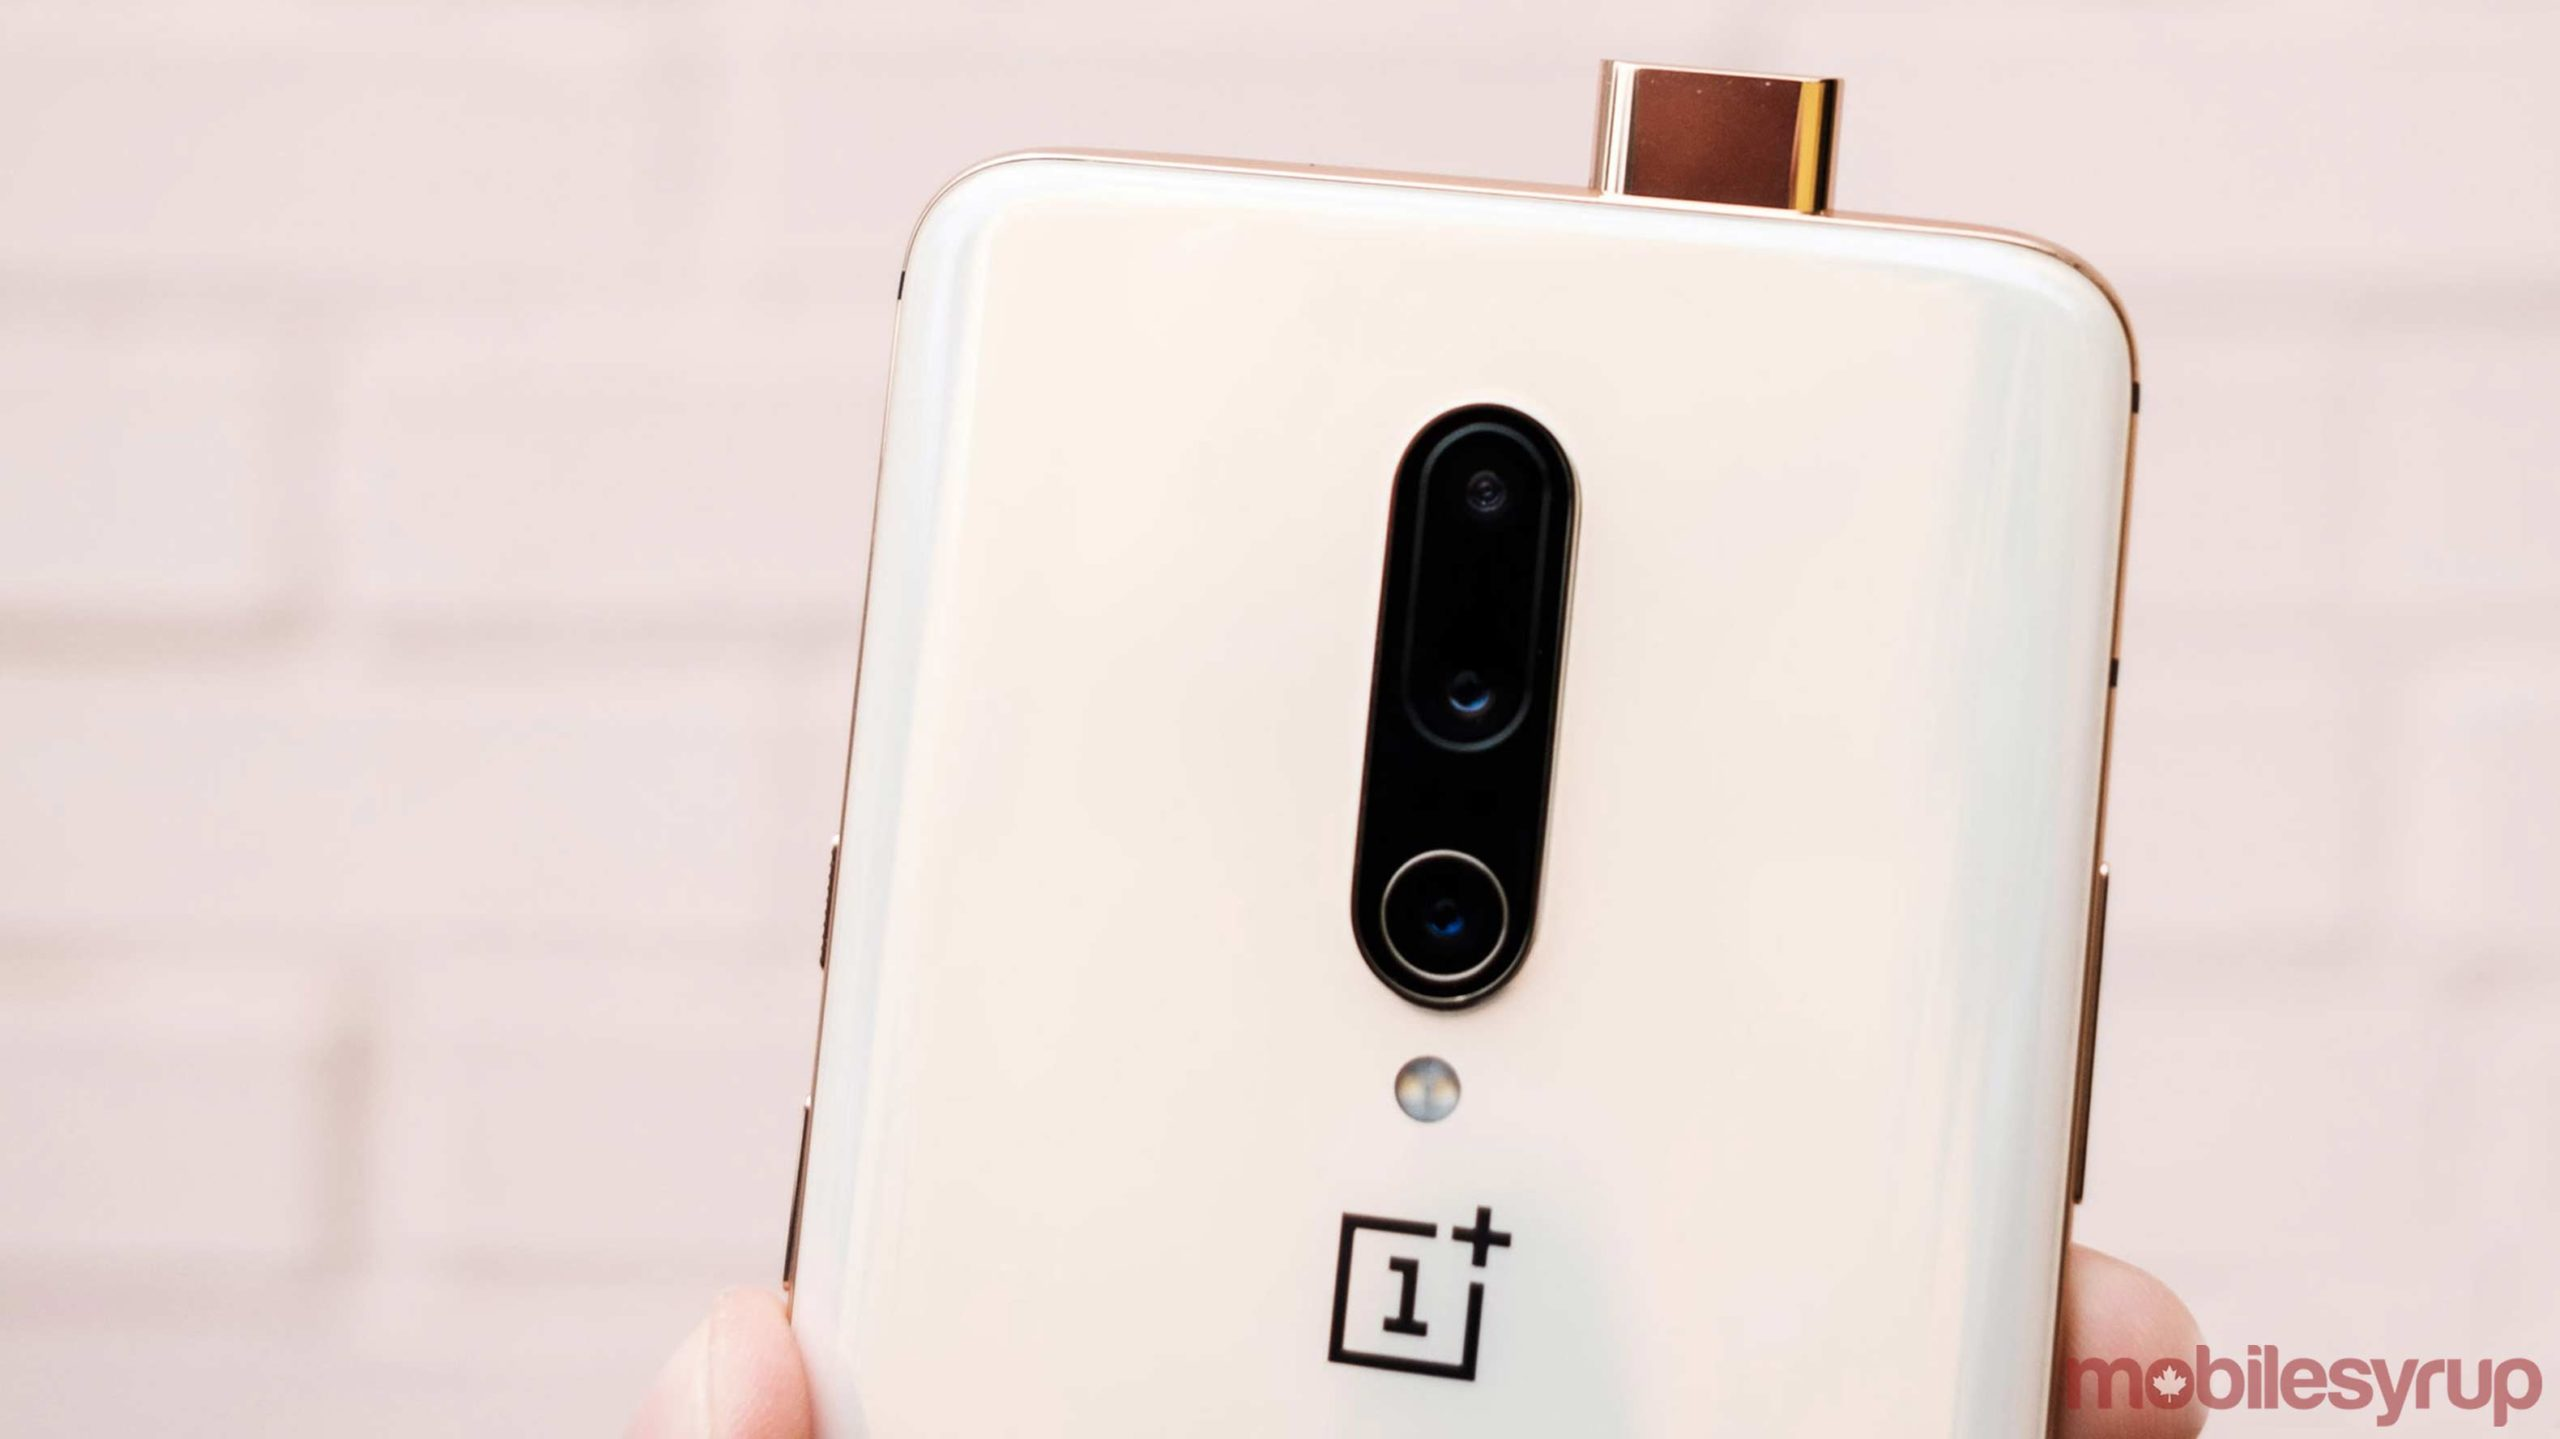 OnePlus CEO shares motion smoothing and 120Hz examples on Twitter